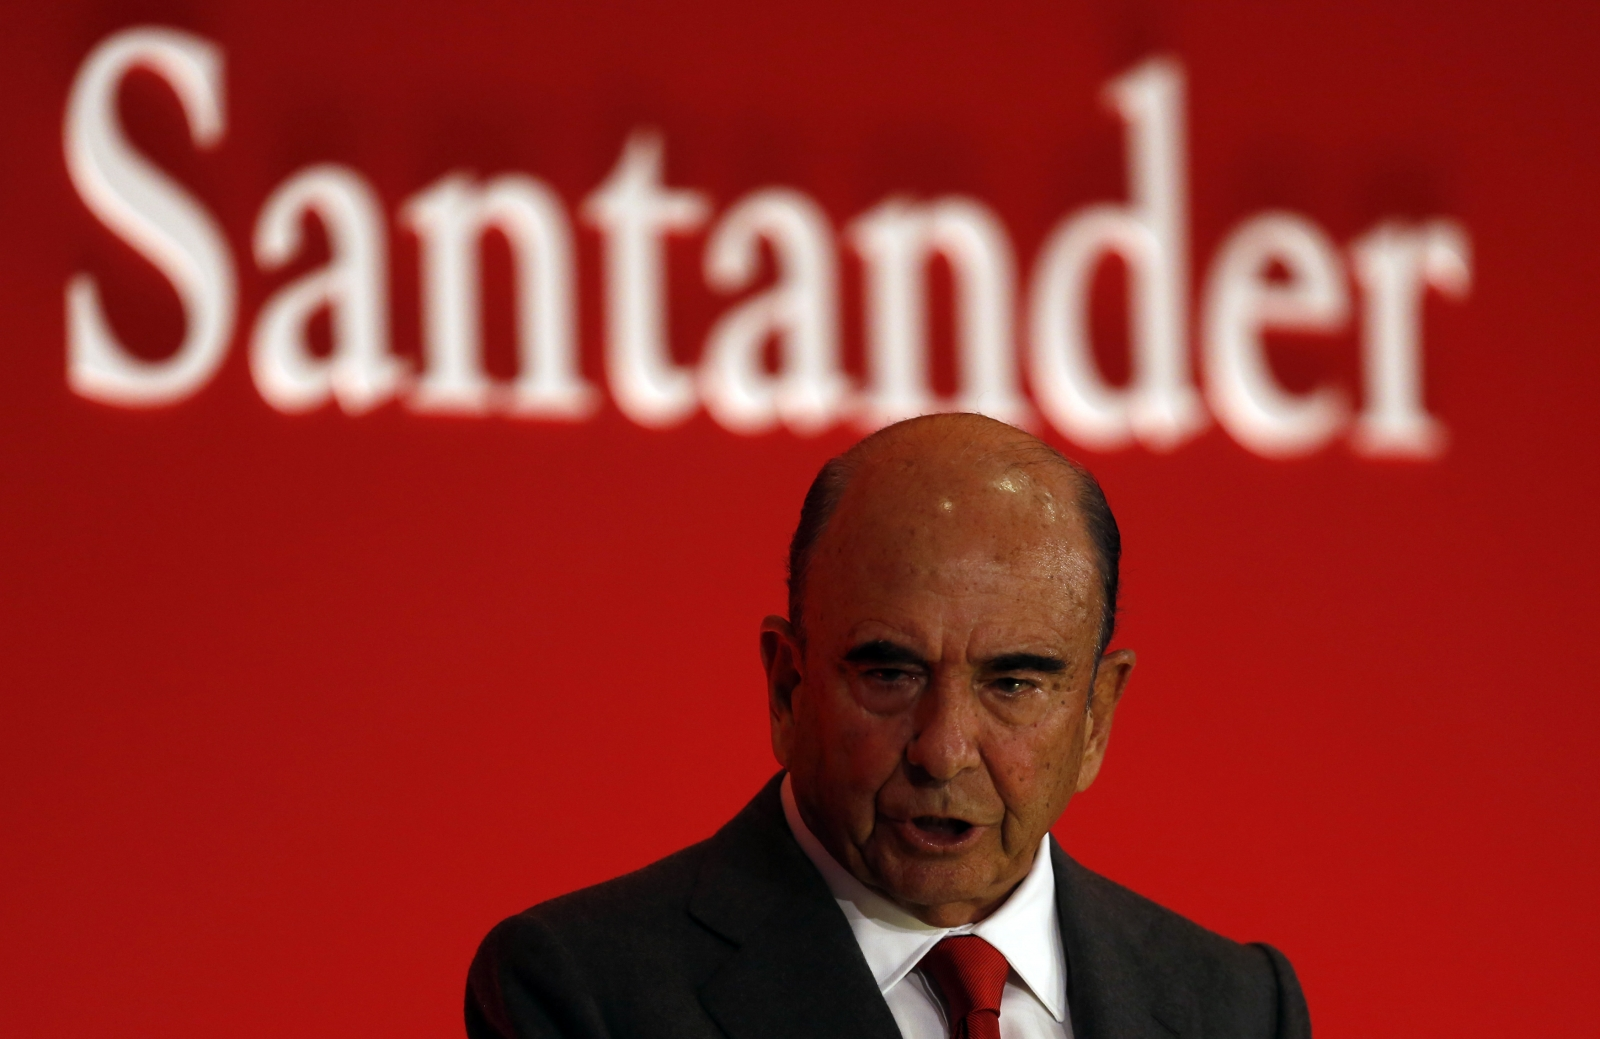 Santander Shares Sink After Chairman Emilio Botin Dies